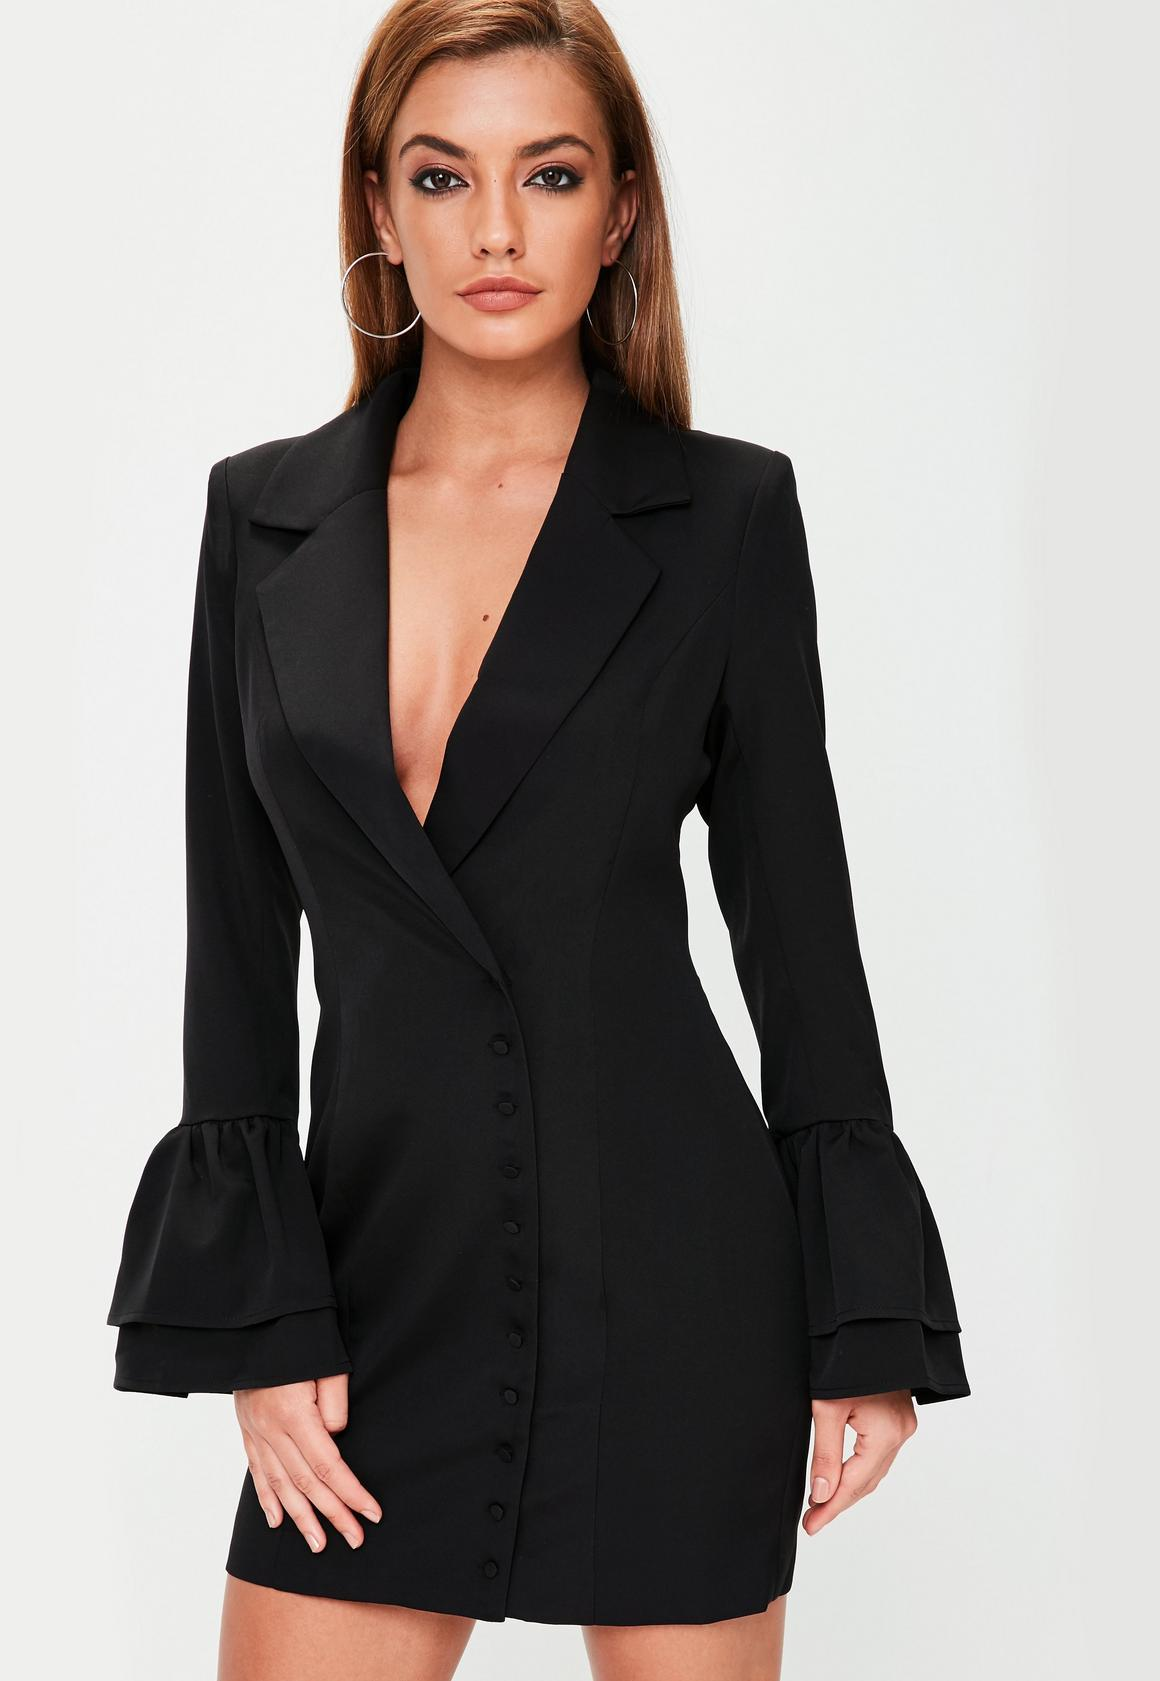 Black Frill Sleeve Blazer Dress | Missguided